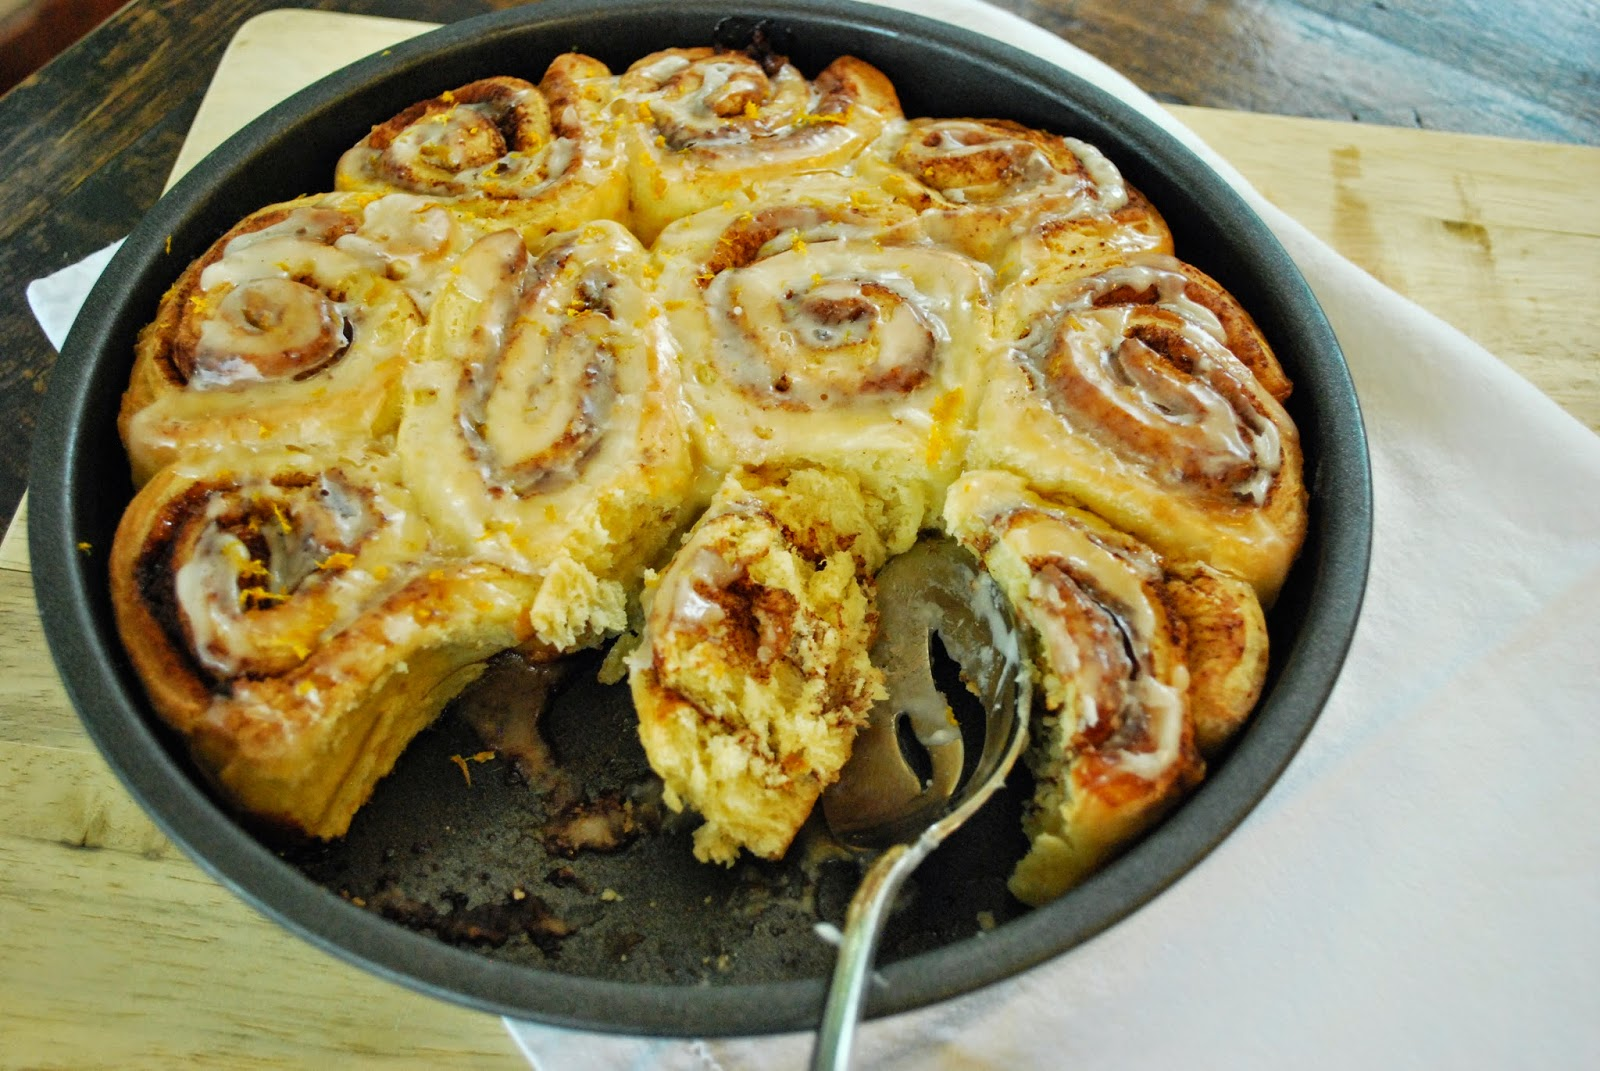 Mandarinquat Sesame Cinnamon Rolls: With its hint of sesame oil, dense consistency, and marmalade-like flavor, these are a unique, yet special take on your typical cinnamon roll recipe.